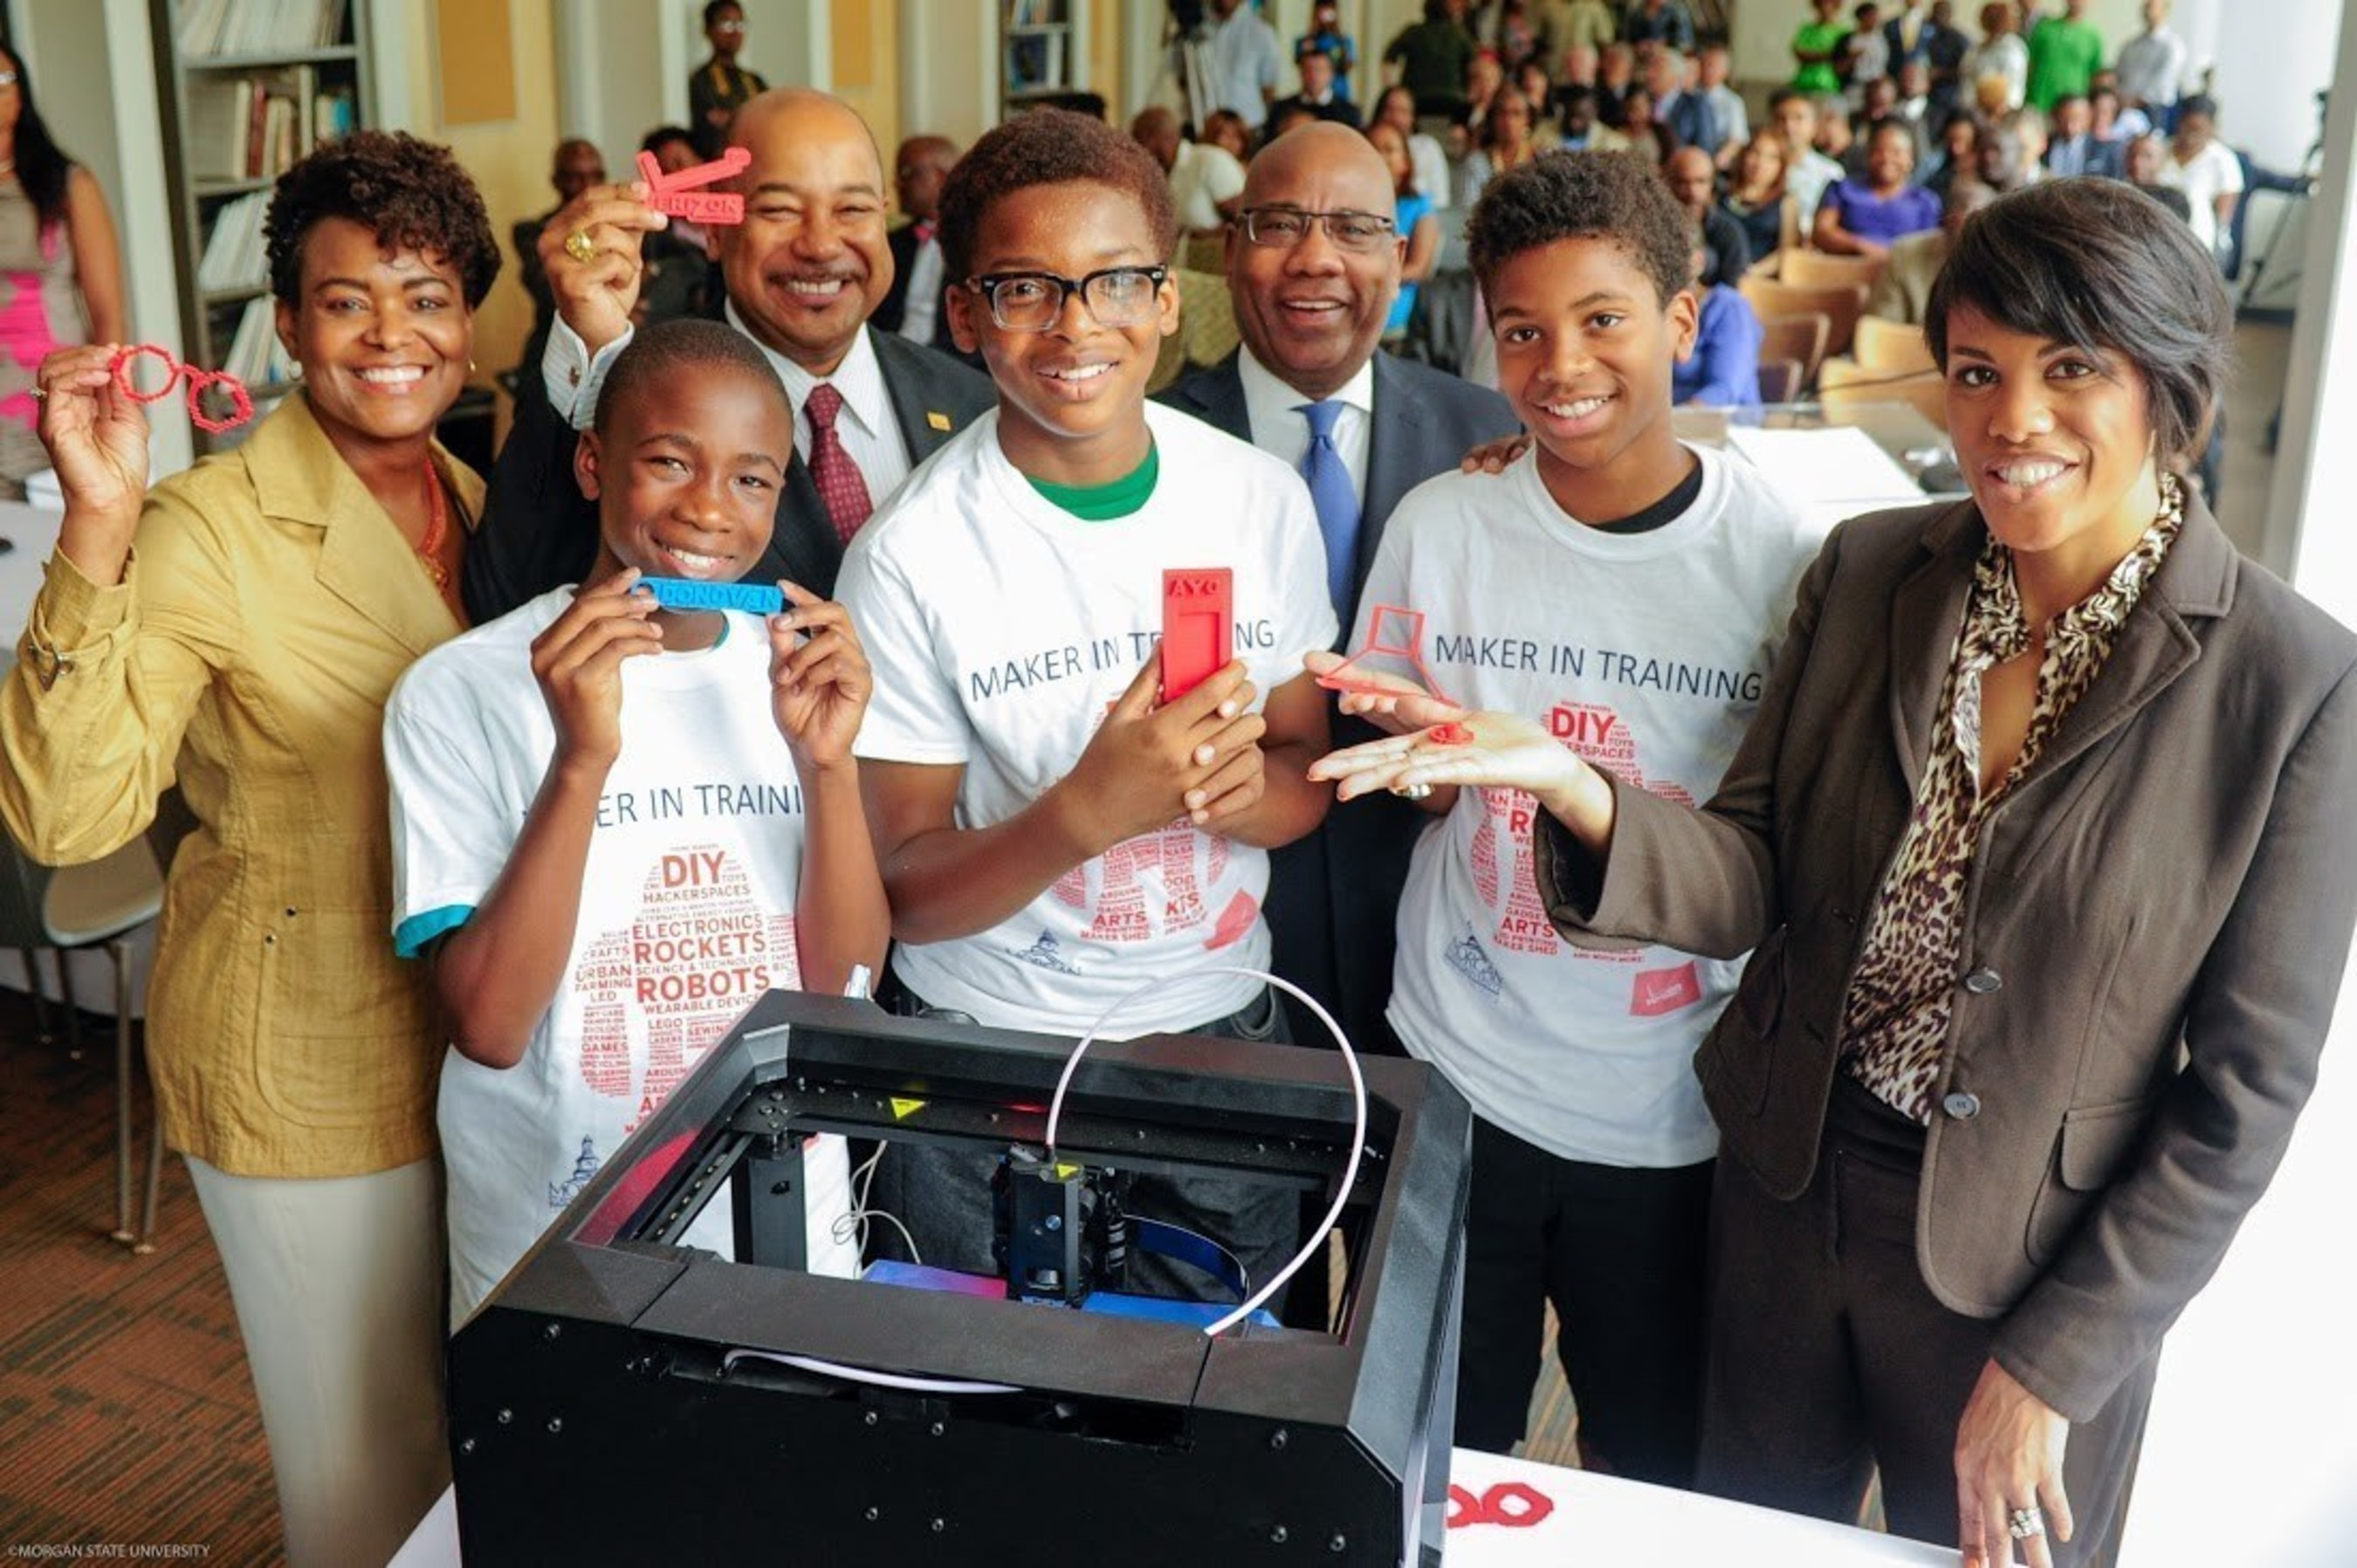 Hundreds of Minority Middle School Boys Learn Coding, 3D Design This Summer in Pioneering New Program from Verizon